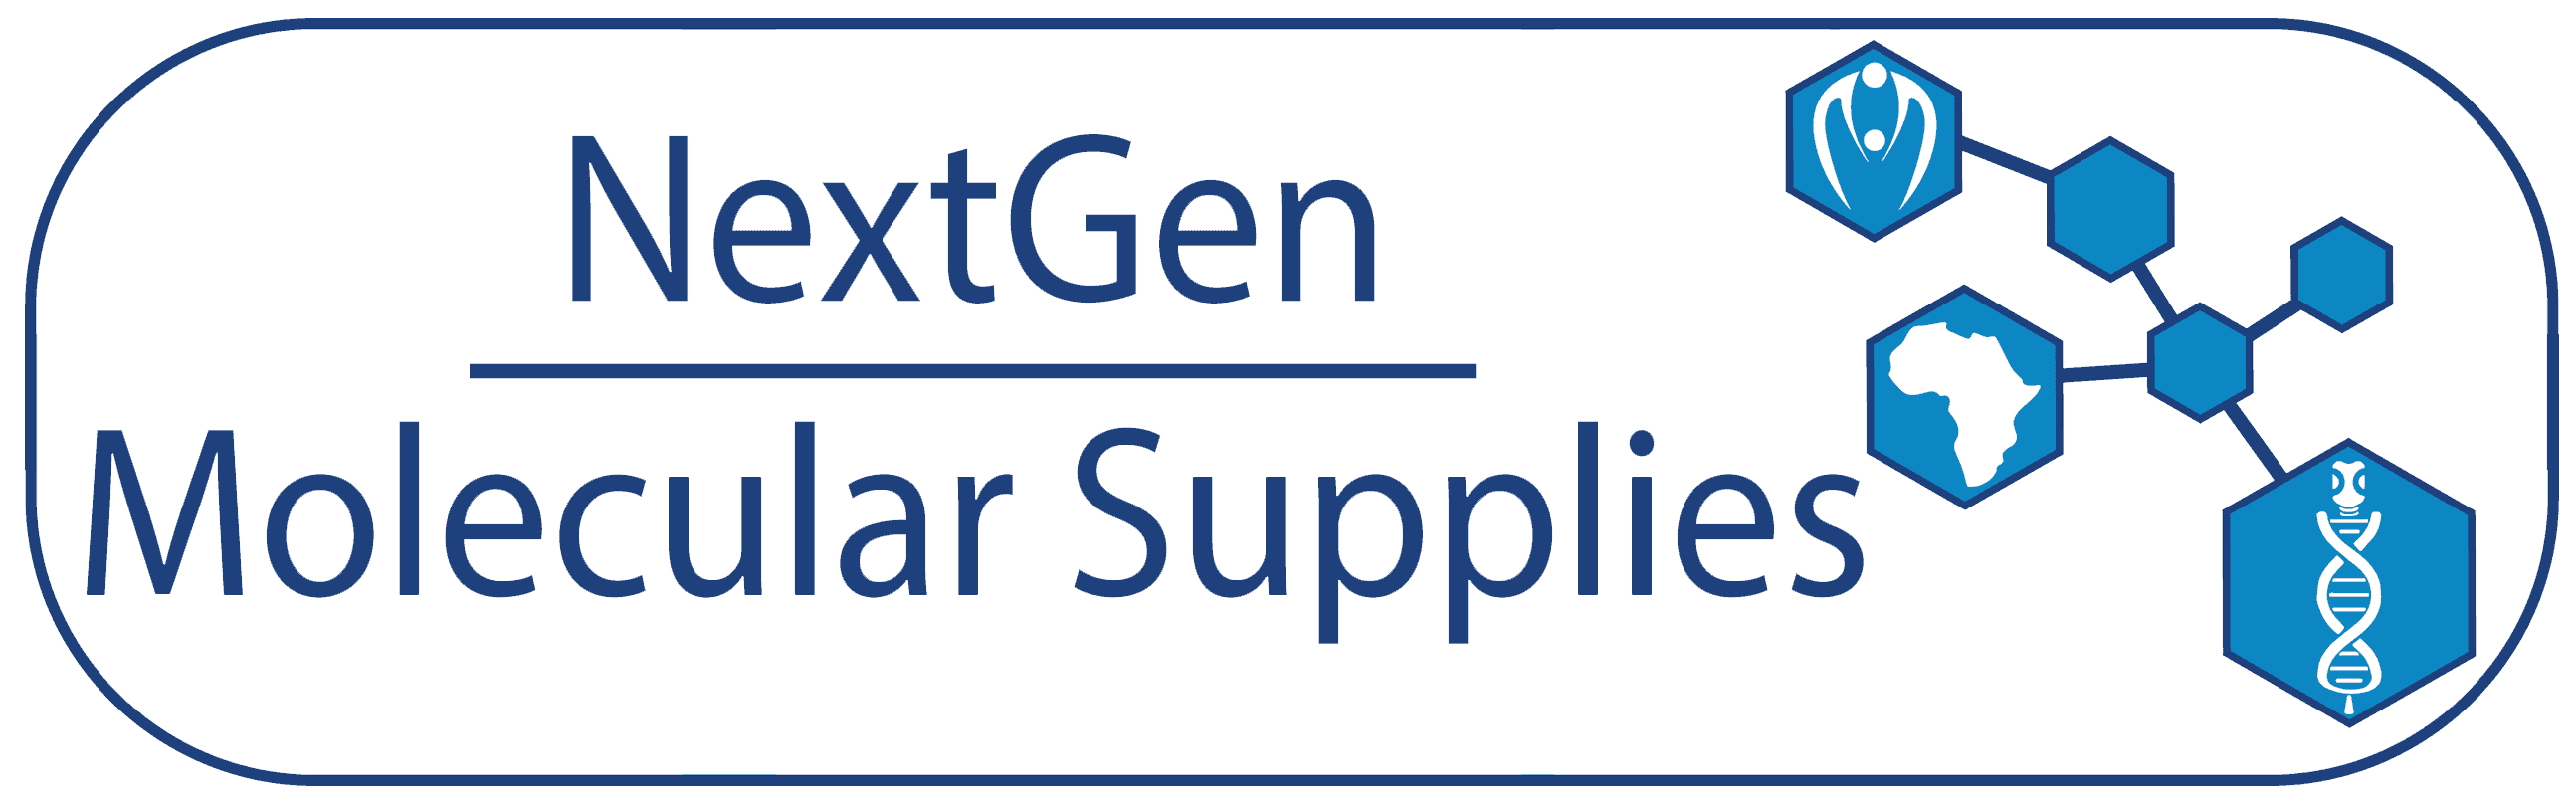 NGMS | NextGen Molecular Supplies